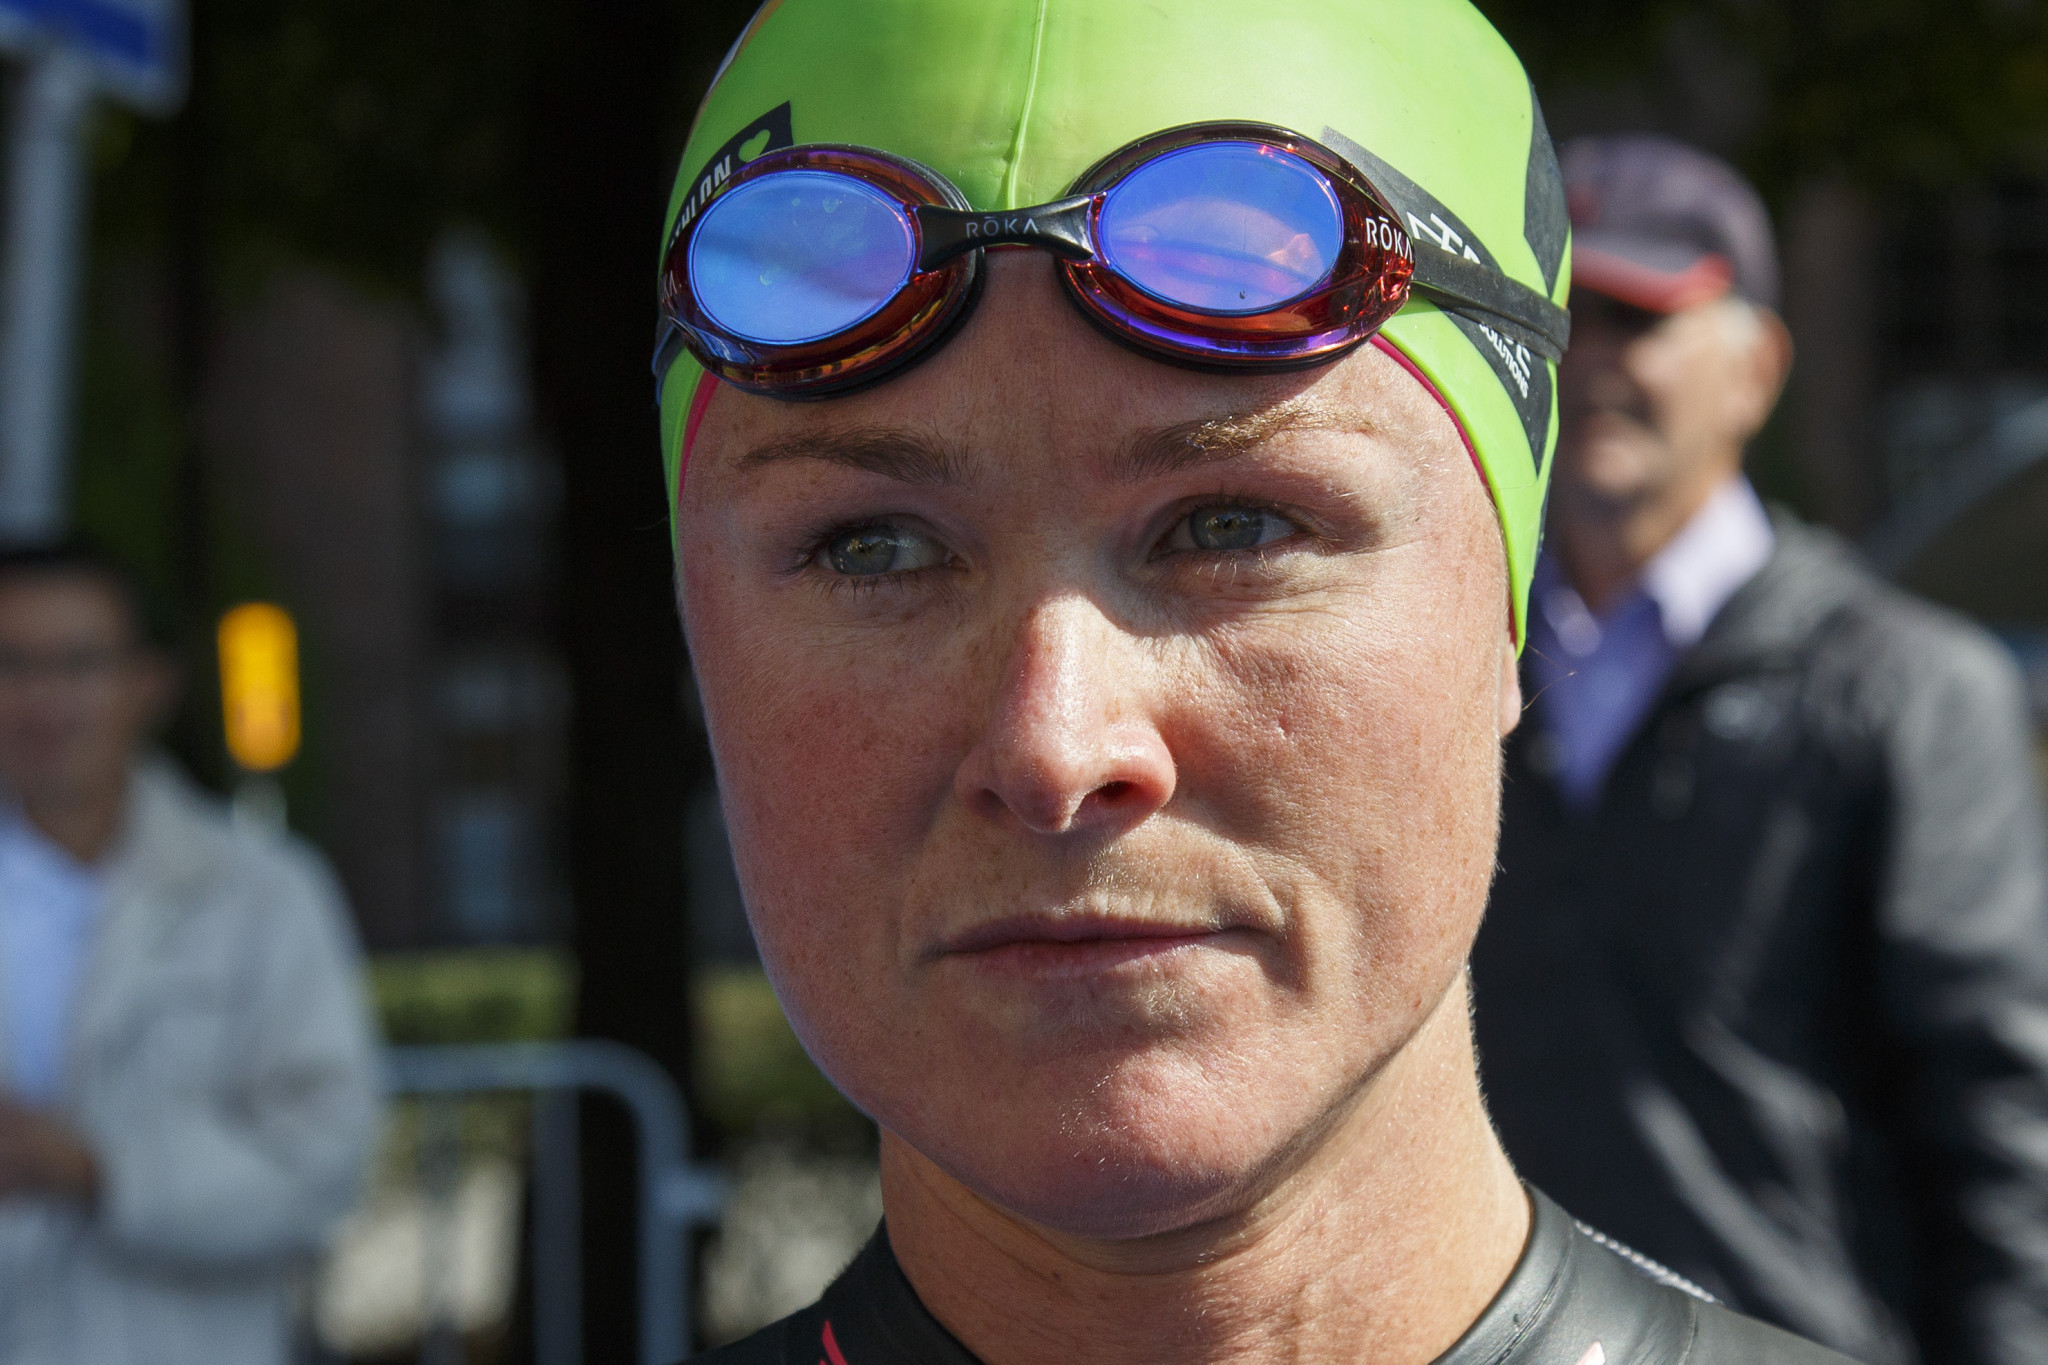 Duffy poised to retain world triathlon title in Rotterdam – but Mola faces Gomez challenge